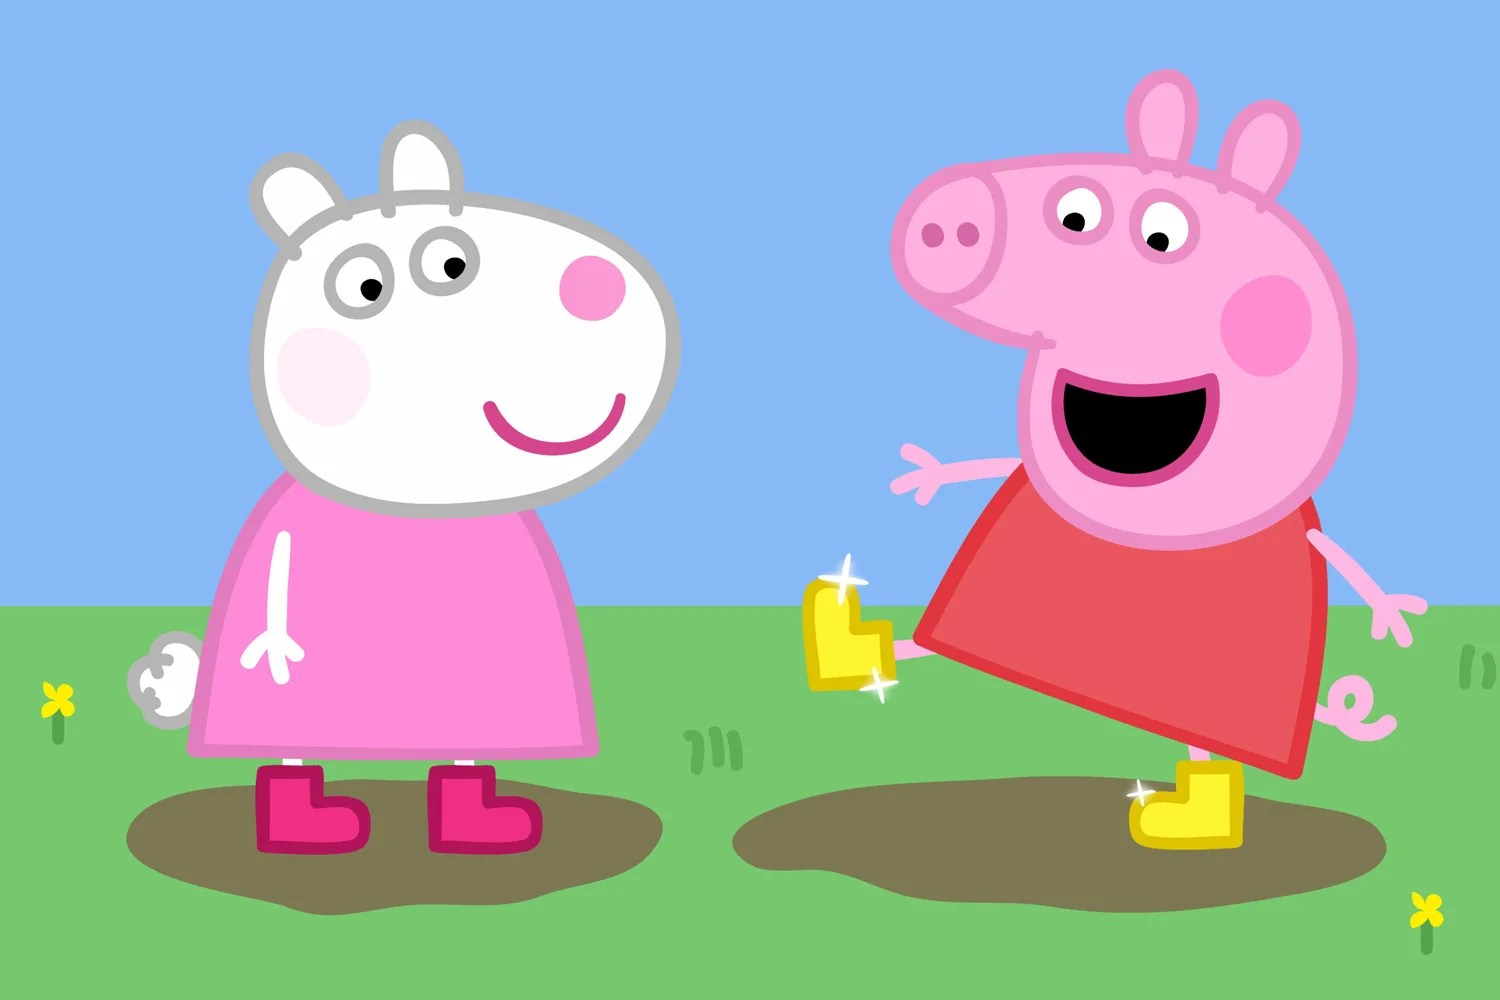 13peppapig0107a Peppa Pig changing accents in US: American parents claim children are talking like Brits after watching show